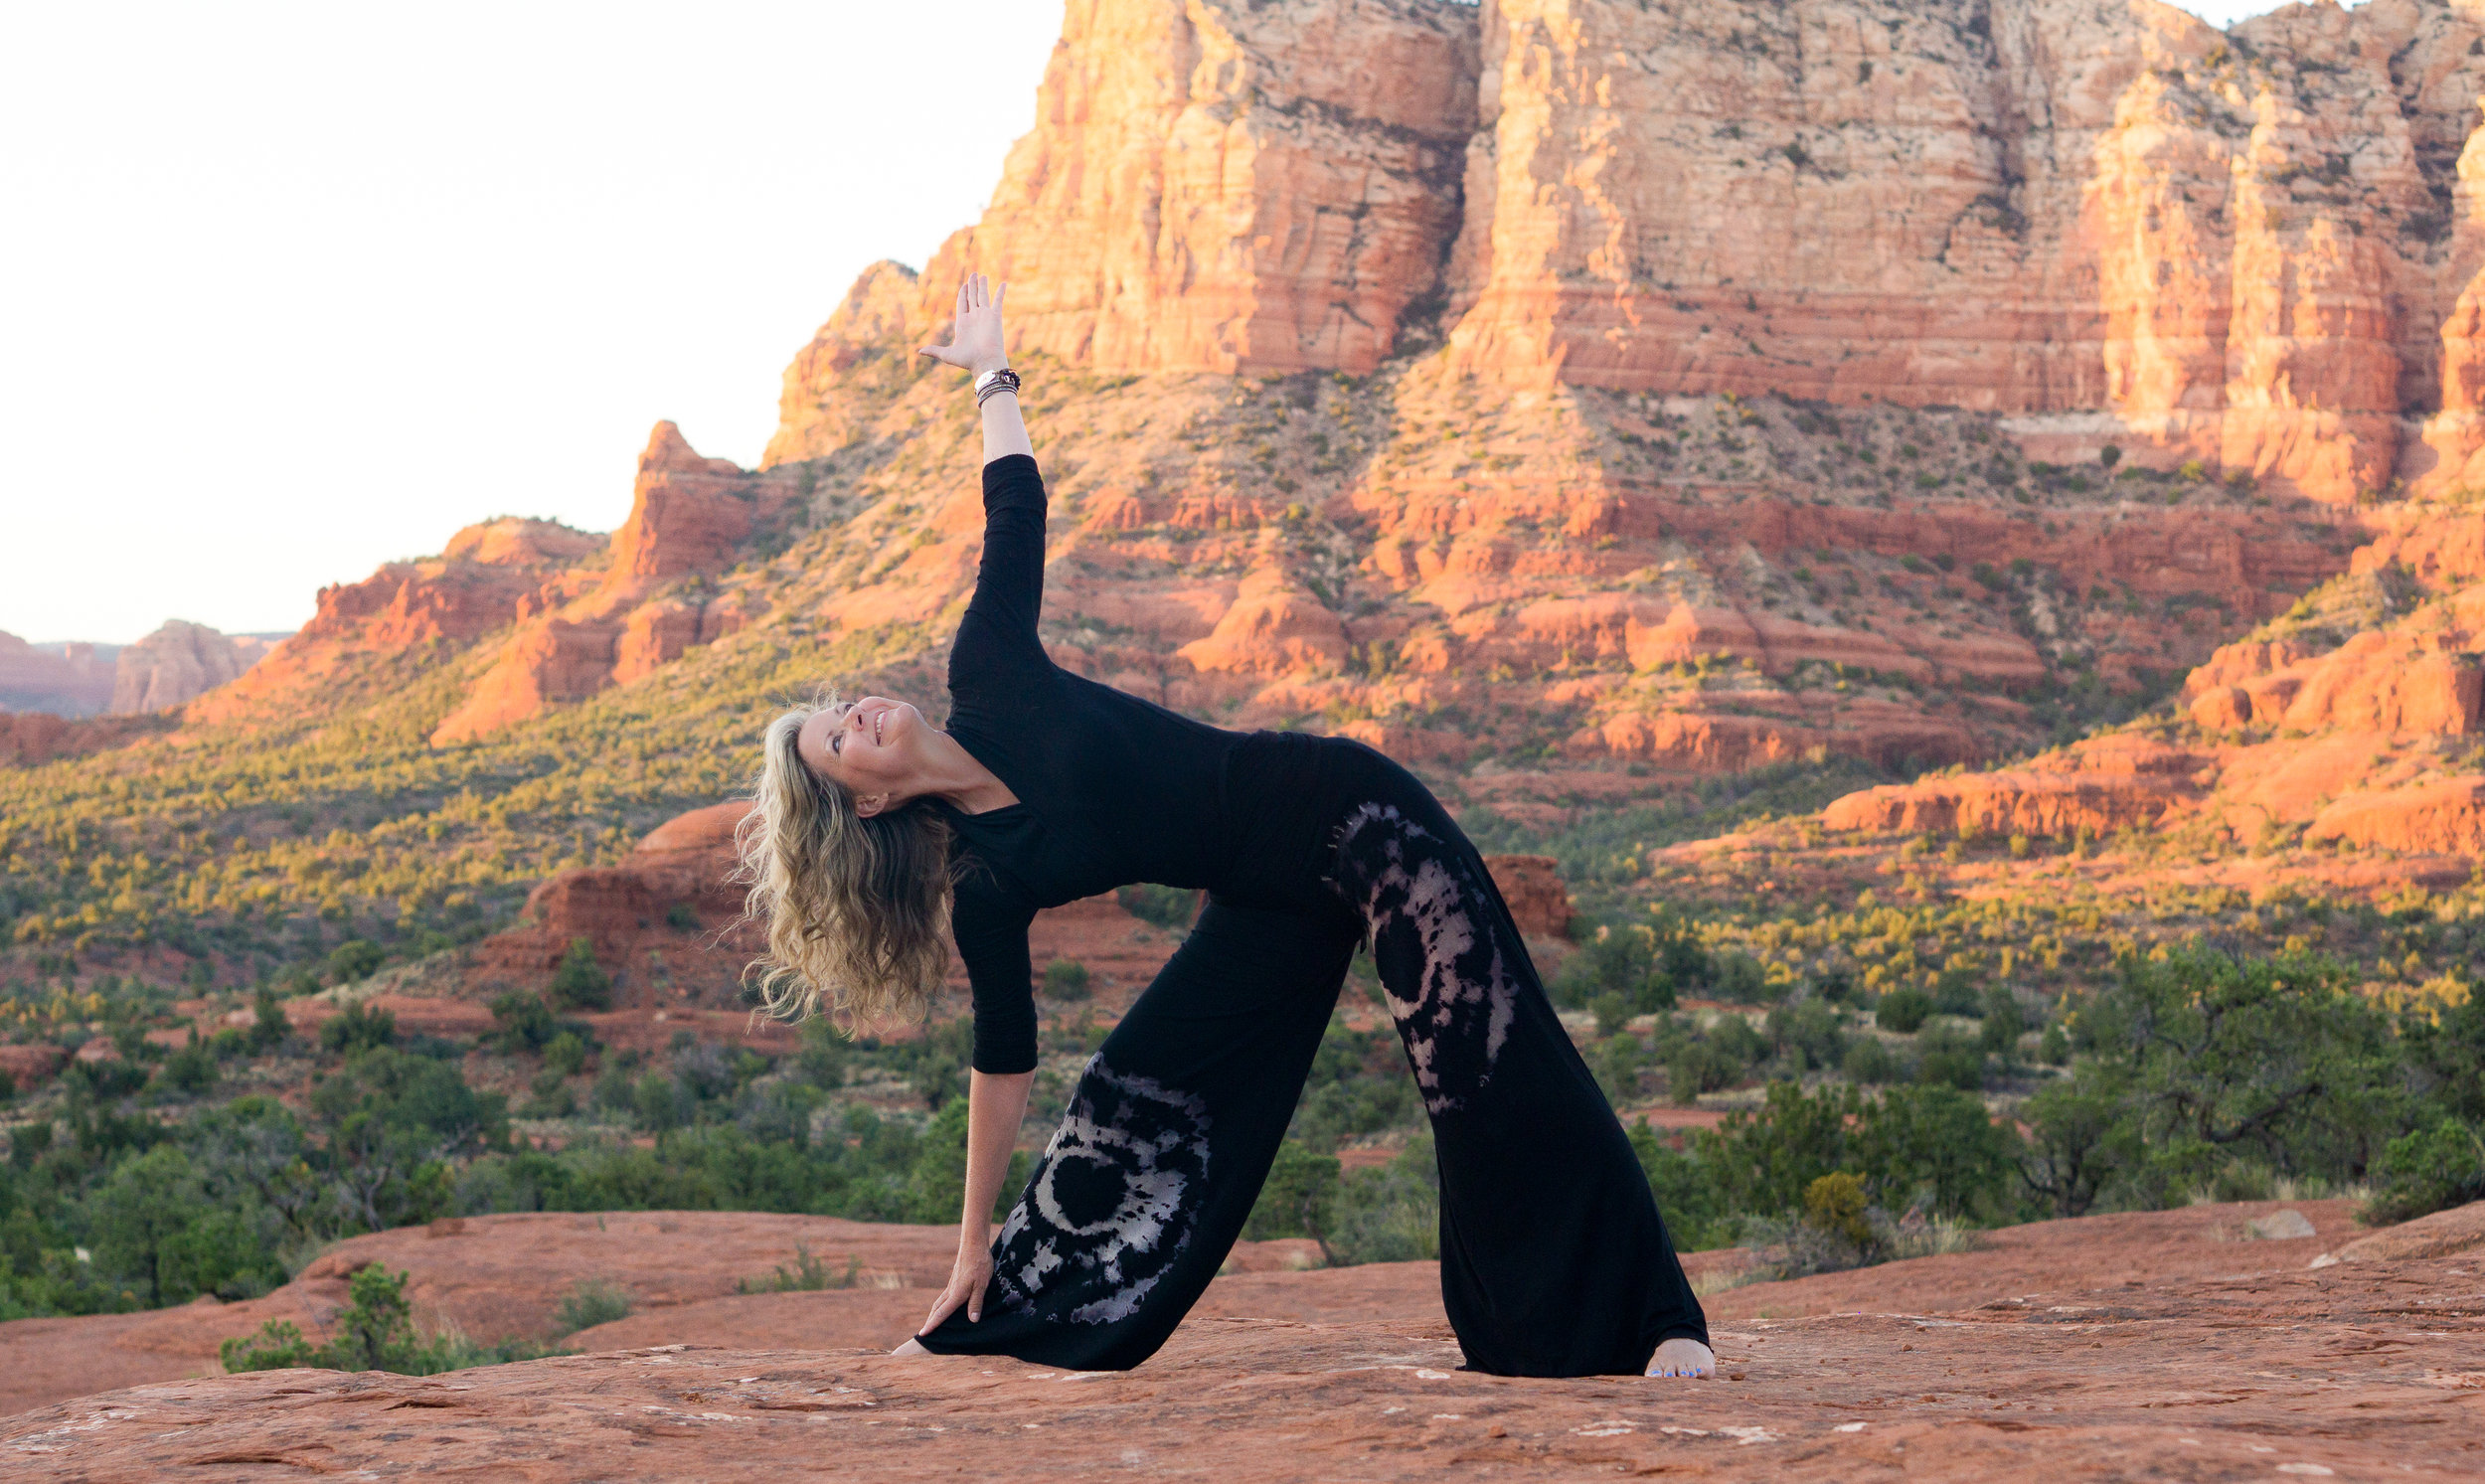 Hope Knosher-Hope's Yoga-Health Living With Hope-Sedona Arizona-Awakening Hope Retreat Yoga Hiking and Healing in Sedona